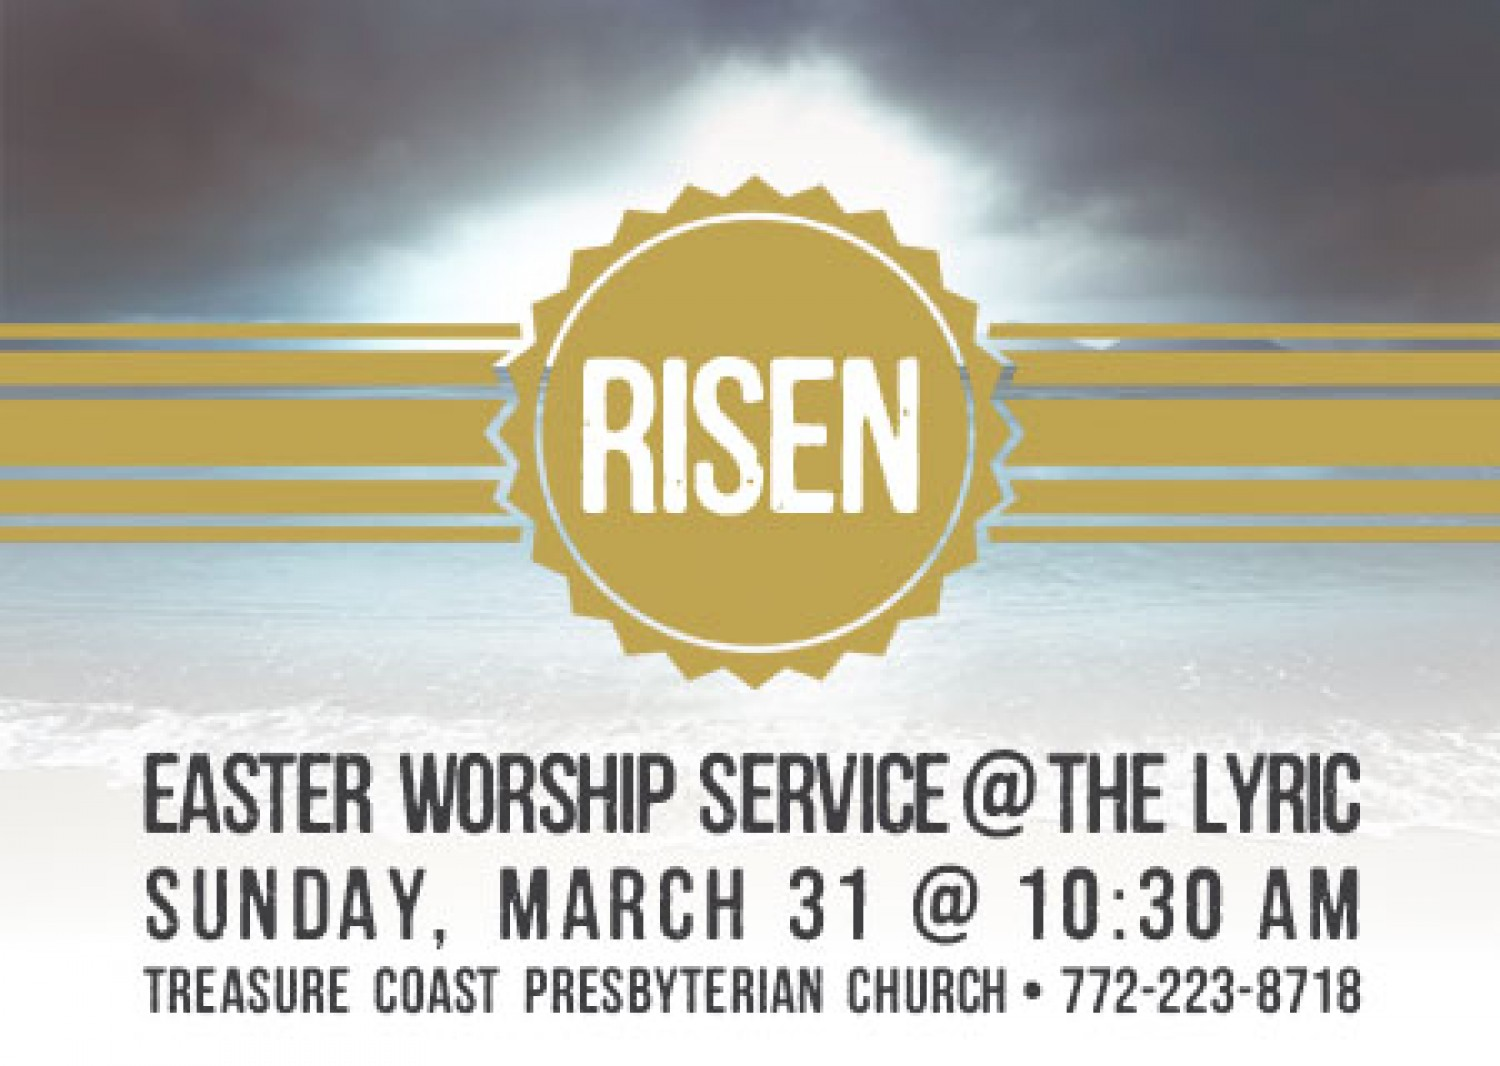 Easter worship service treasure coast presbyterian churchshow treasure coast presbyterian church invites you to join us at the lyric theater for our easter worship service what you can expect is a warm welcoming and stopboris Images